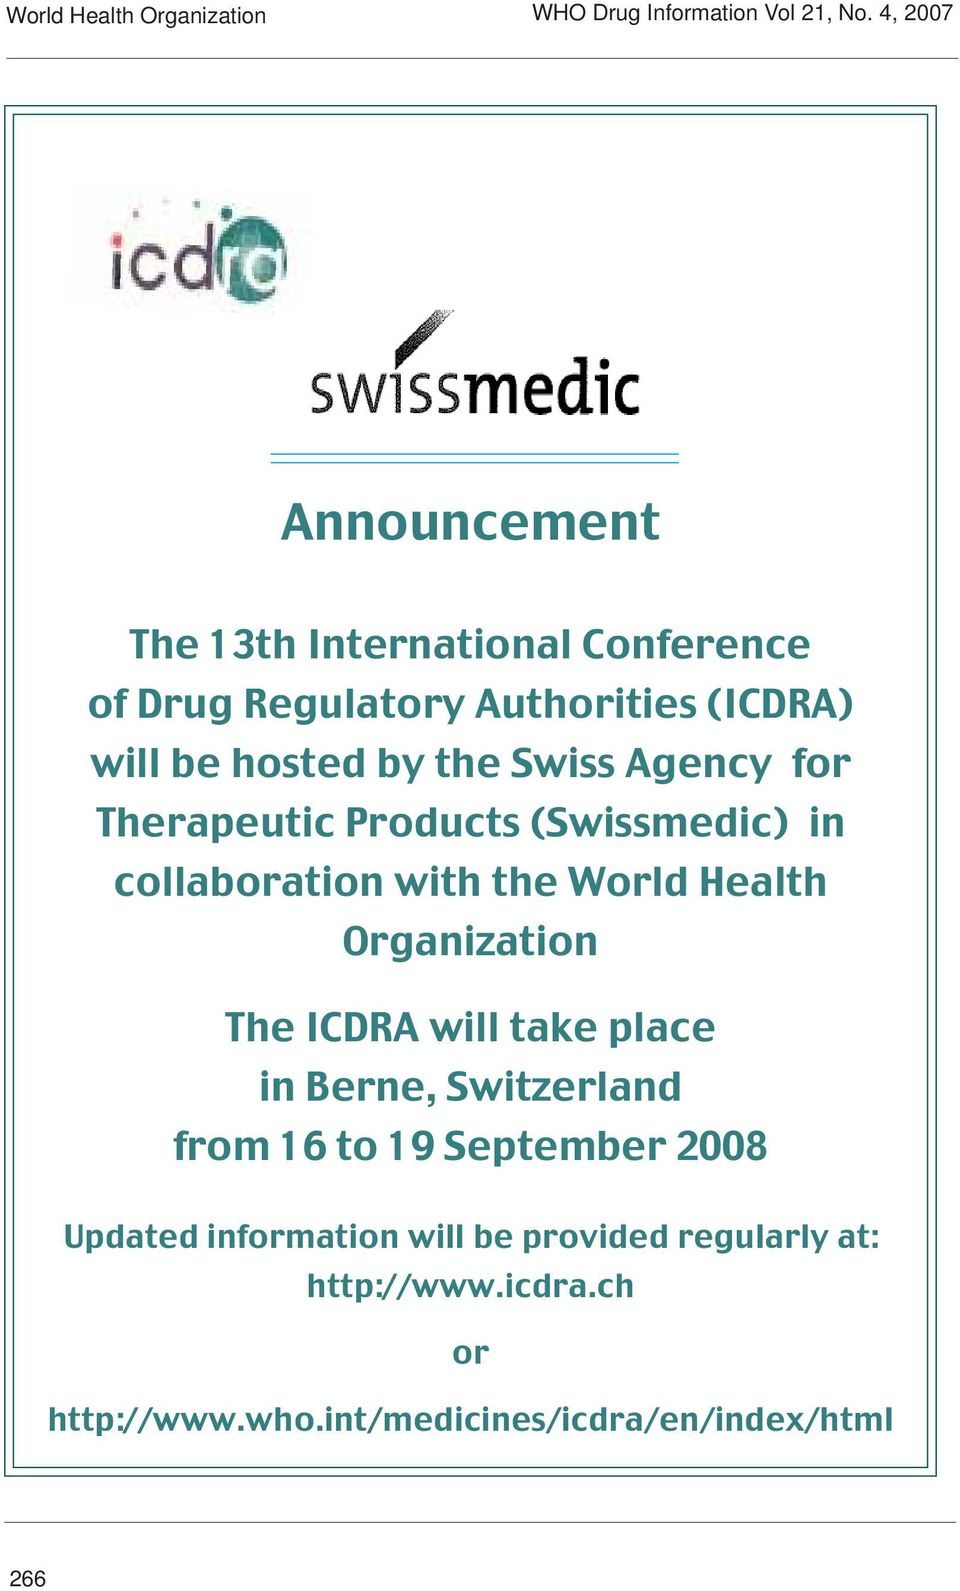 Swiss Agency for Therapeutic Products (Swissmedic) in collaboration with the World Health Organization The ICDRA will